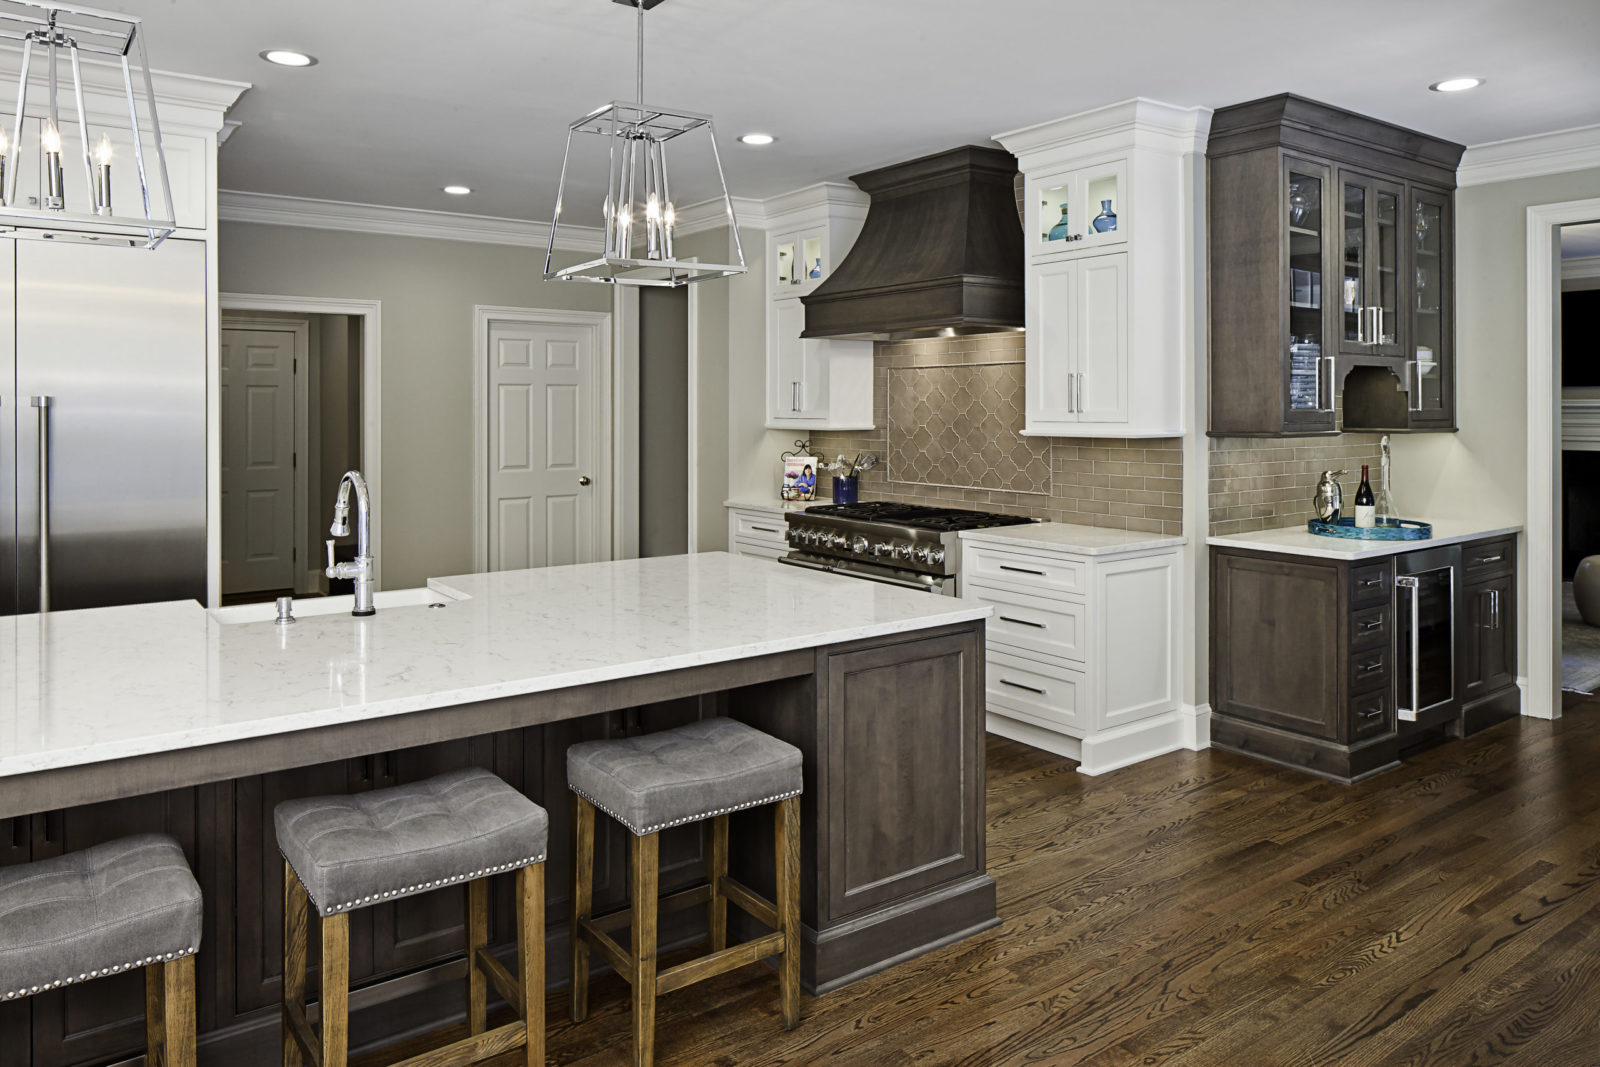 designer-kitchen-white-cabinets-gray-hood